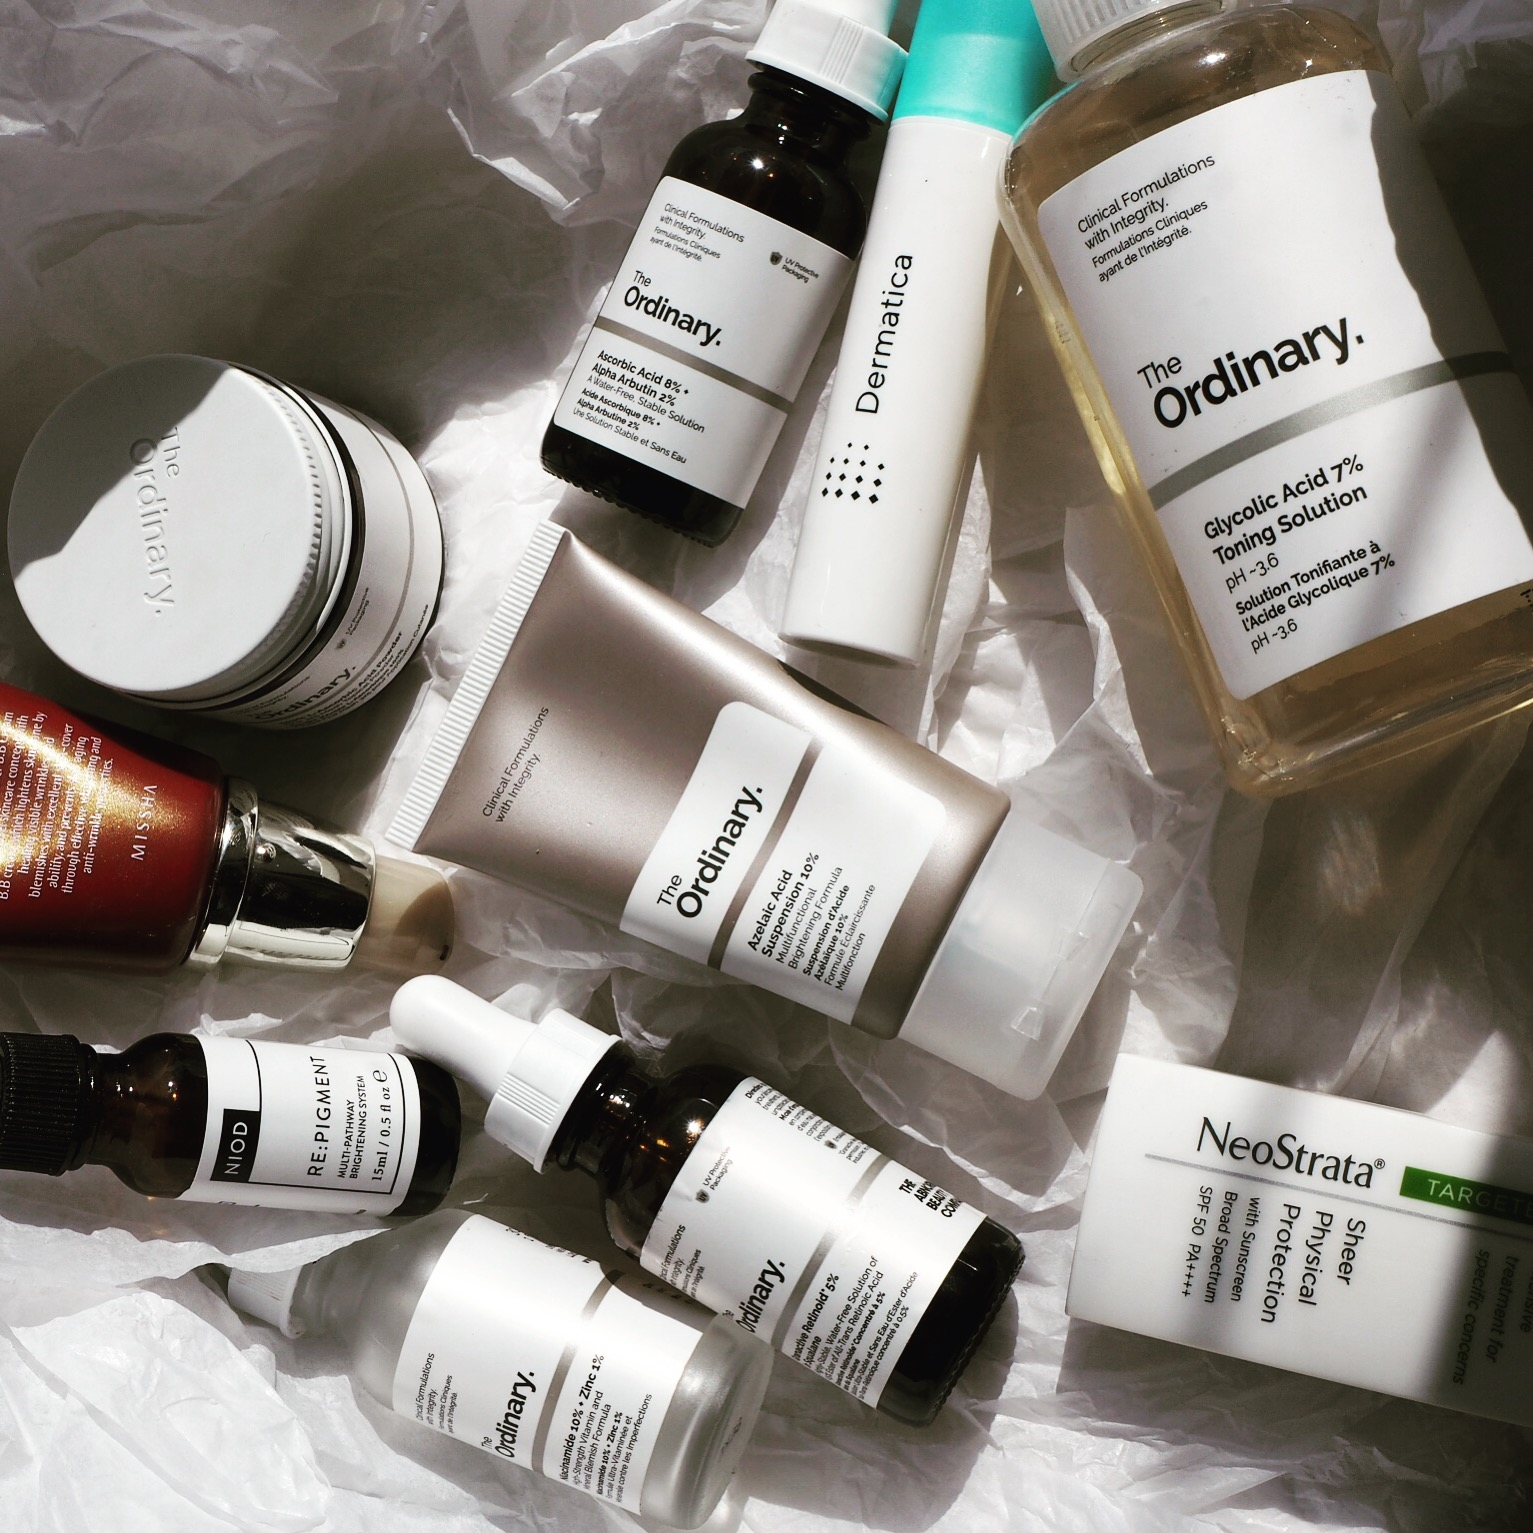 How to Treat Melasma and Pigmentation With The Ordinary